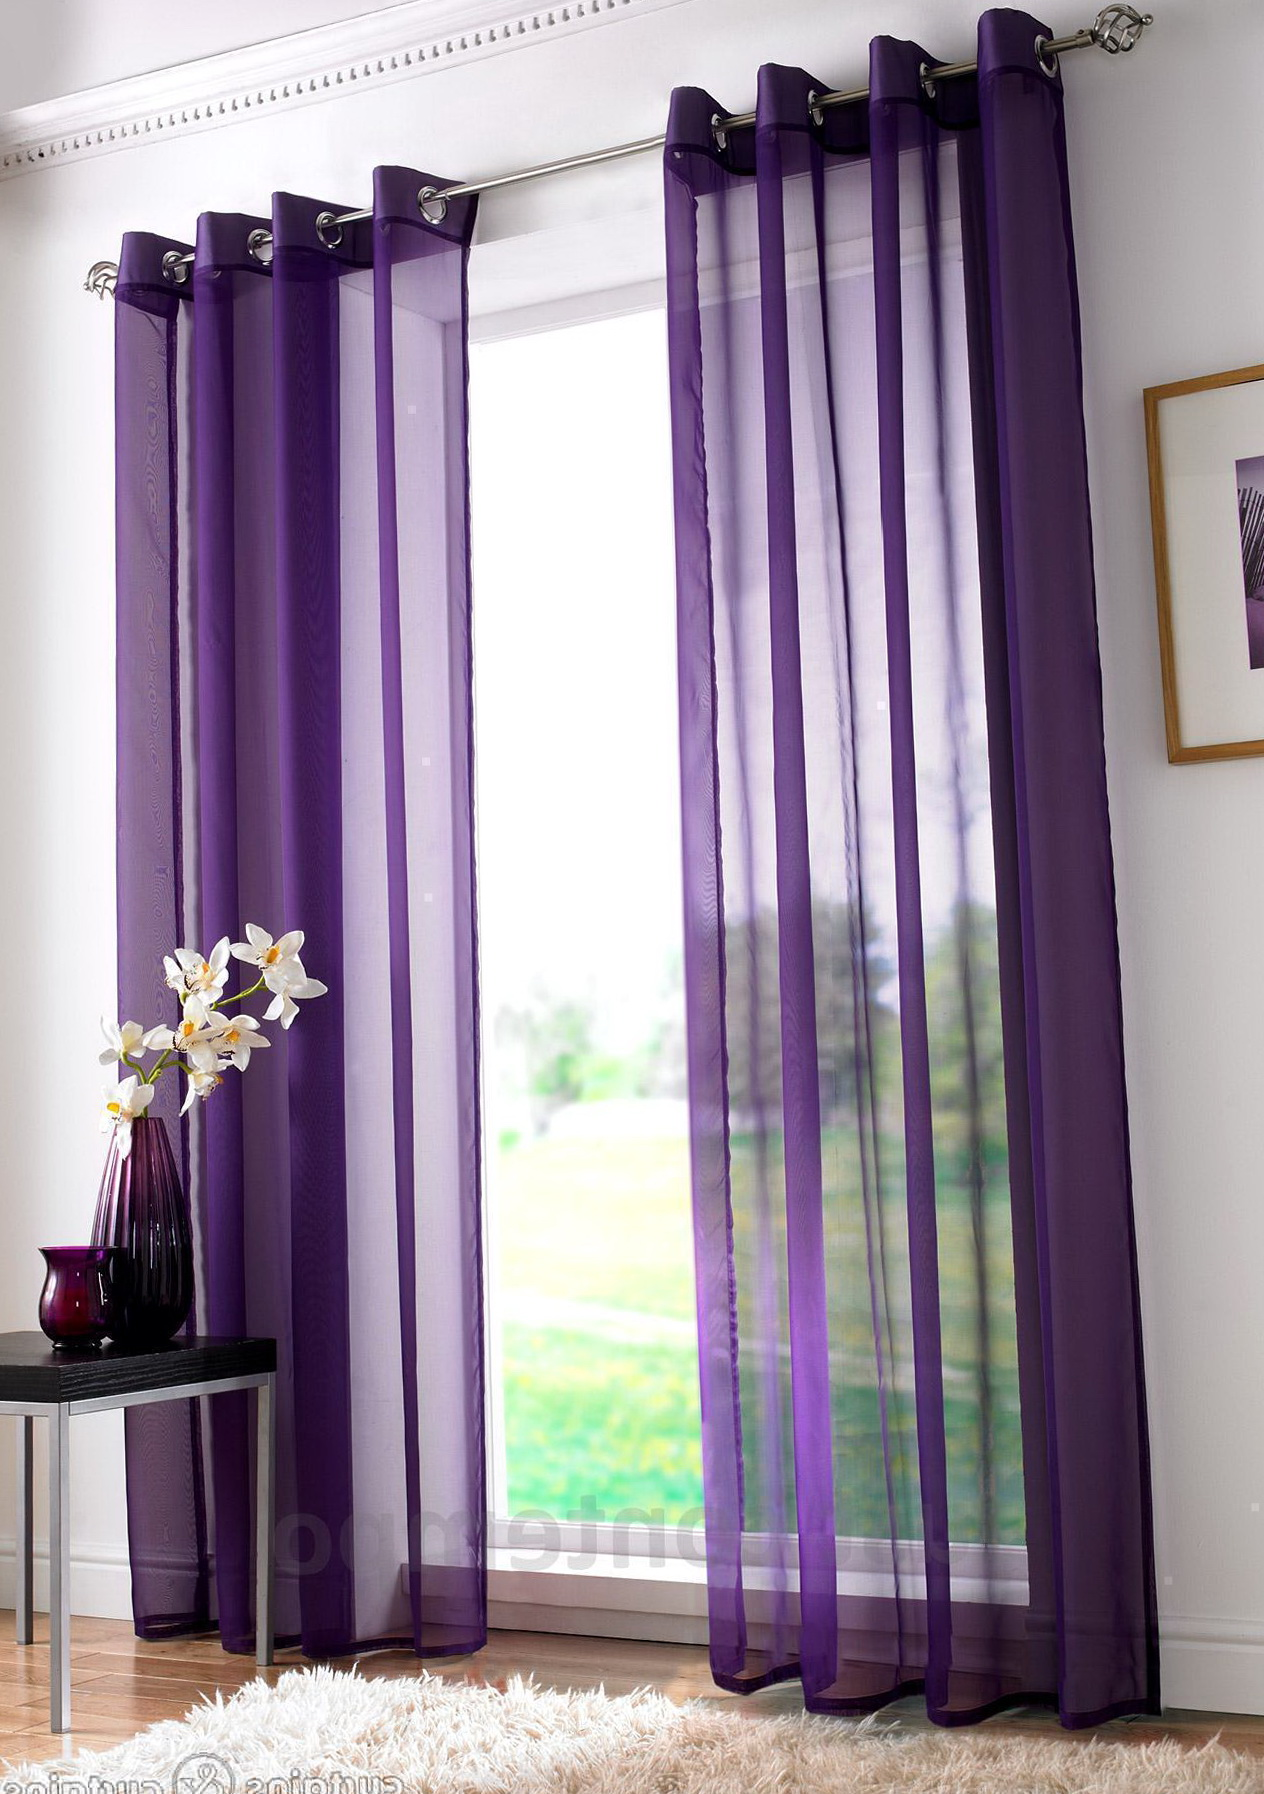 Purple Curtains For Girls Room Home Design Ideas